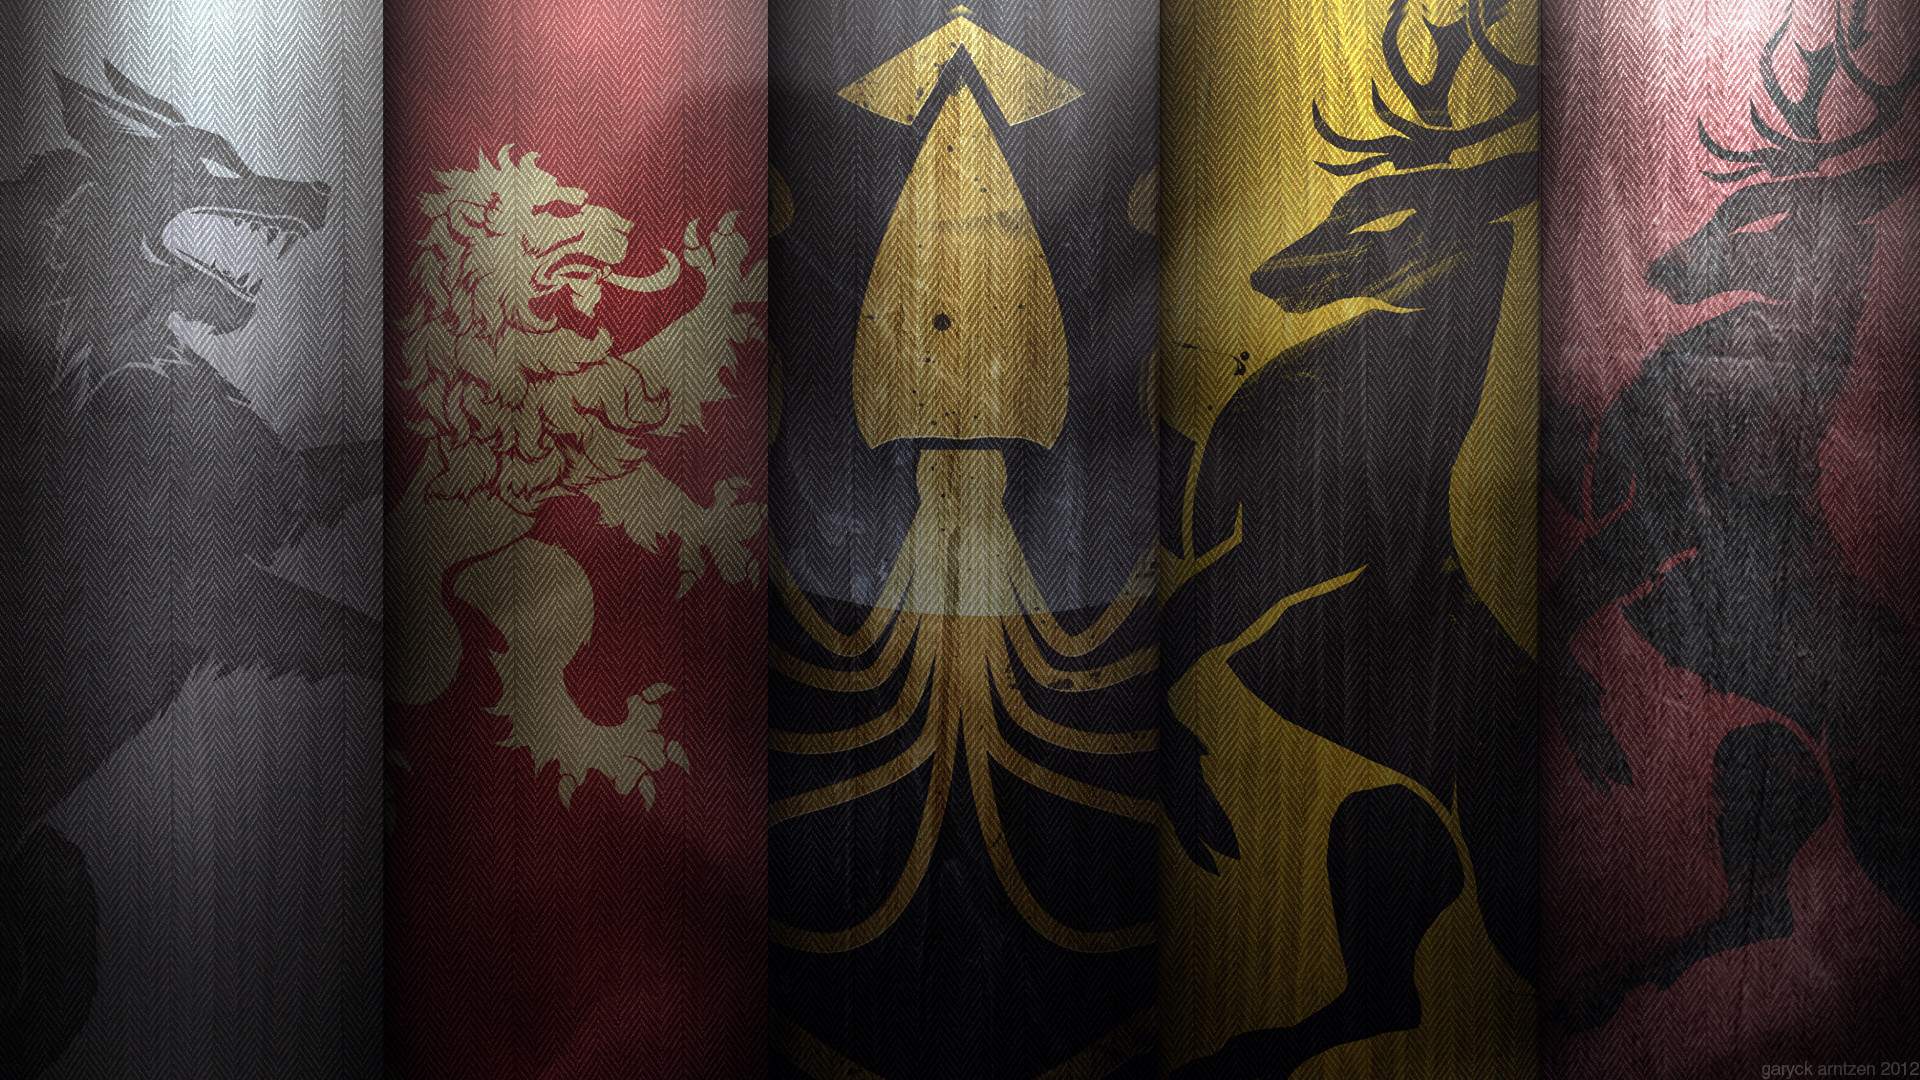 Game of Thrones Wallpaper HD Images